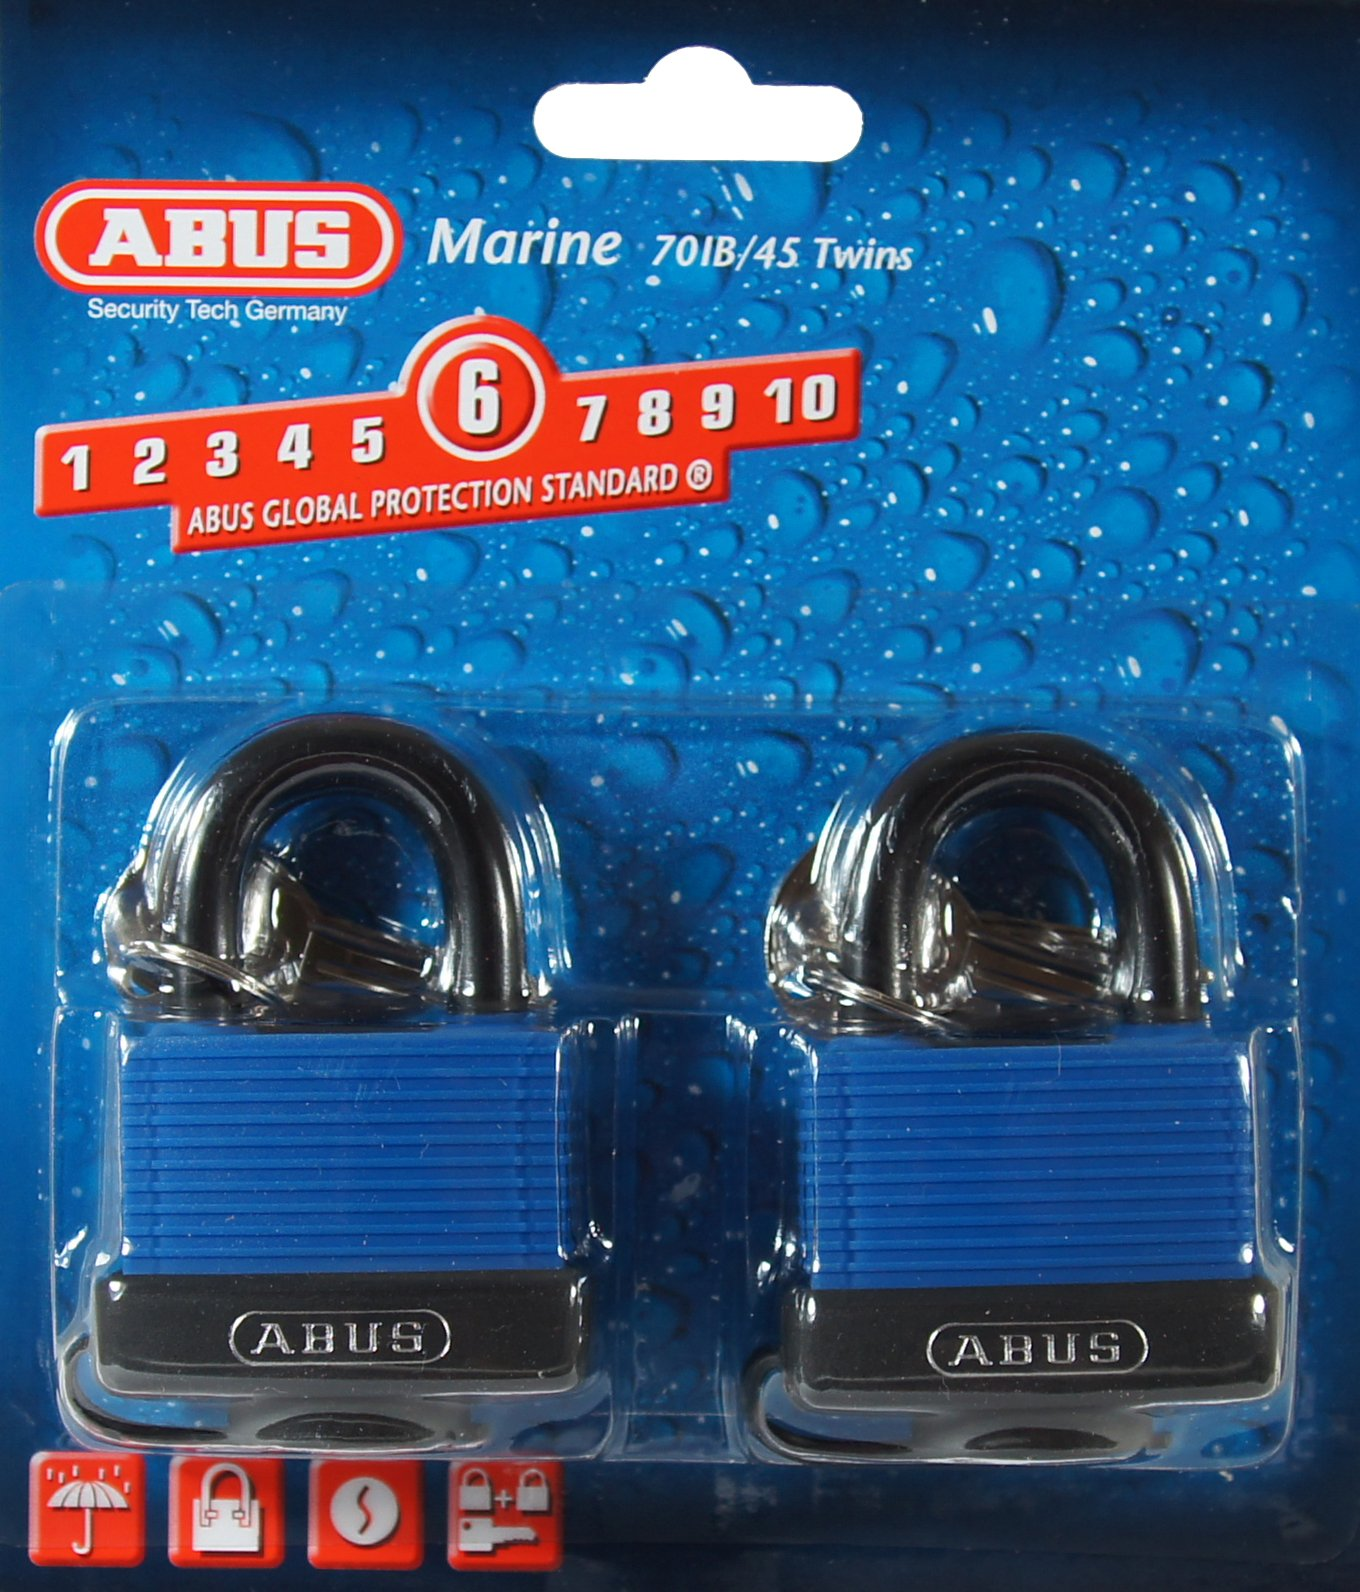 ABUS 70/45 All Weather Solid Brass Padlock Keyed Alike - Stainless Steel Shackle - 2 Pack by ABUS